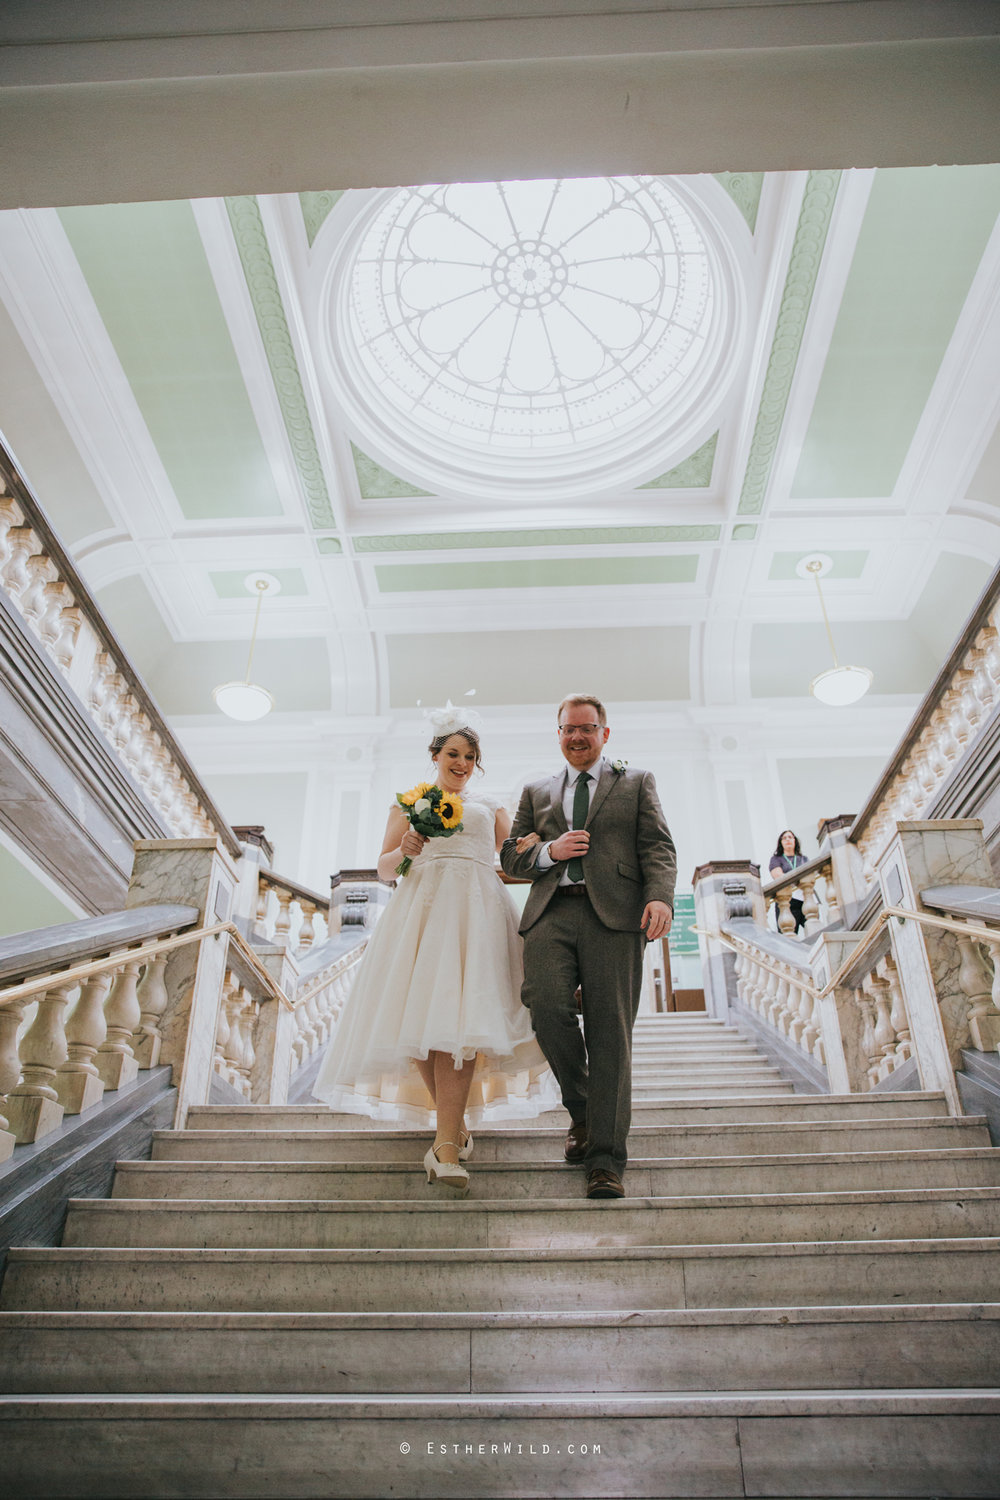 Islington_Town_Hall_Assembly_Hall_Council_Chamber_The_Star_Pub_London_Sacred_Wedding_Copyright_Esther_Wild_Photographer_IMG_0625.jpg